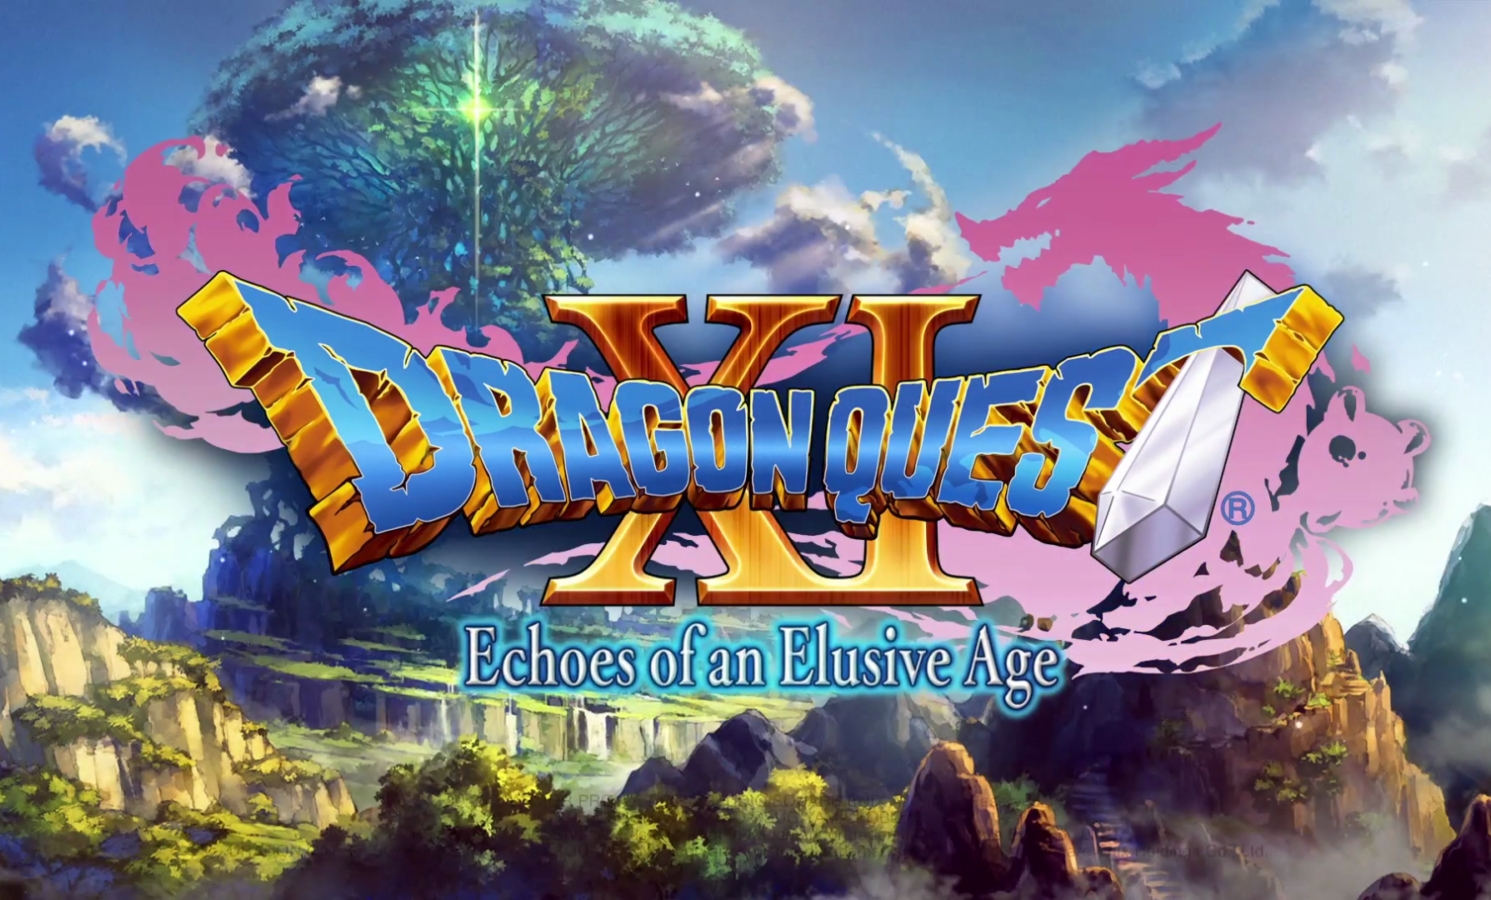 Скриншоты из игры Dragon Quest 11: Echoes of an Elusive Age